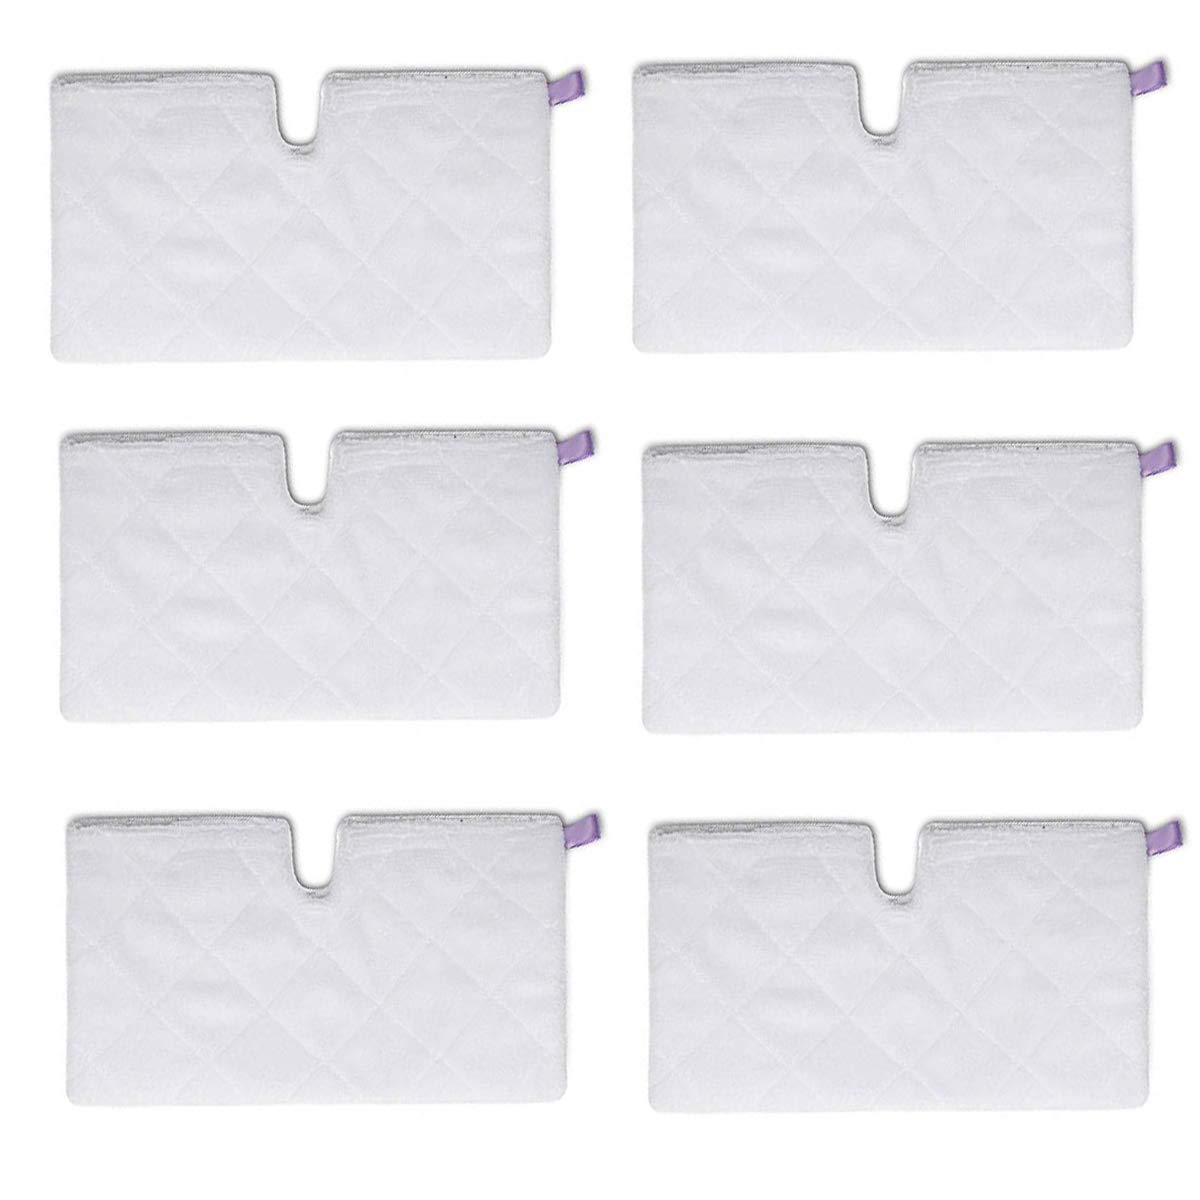 LICORNE 6 Pack Mop Heads Steam Pocket Mop Pads Compatible Replacement Mop Pads for Shark Euro Pro S3501 S3601 S3901